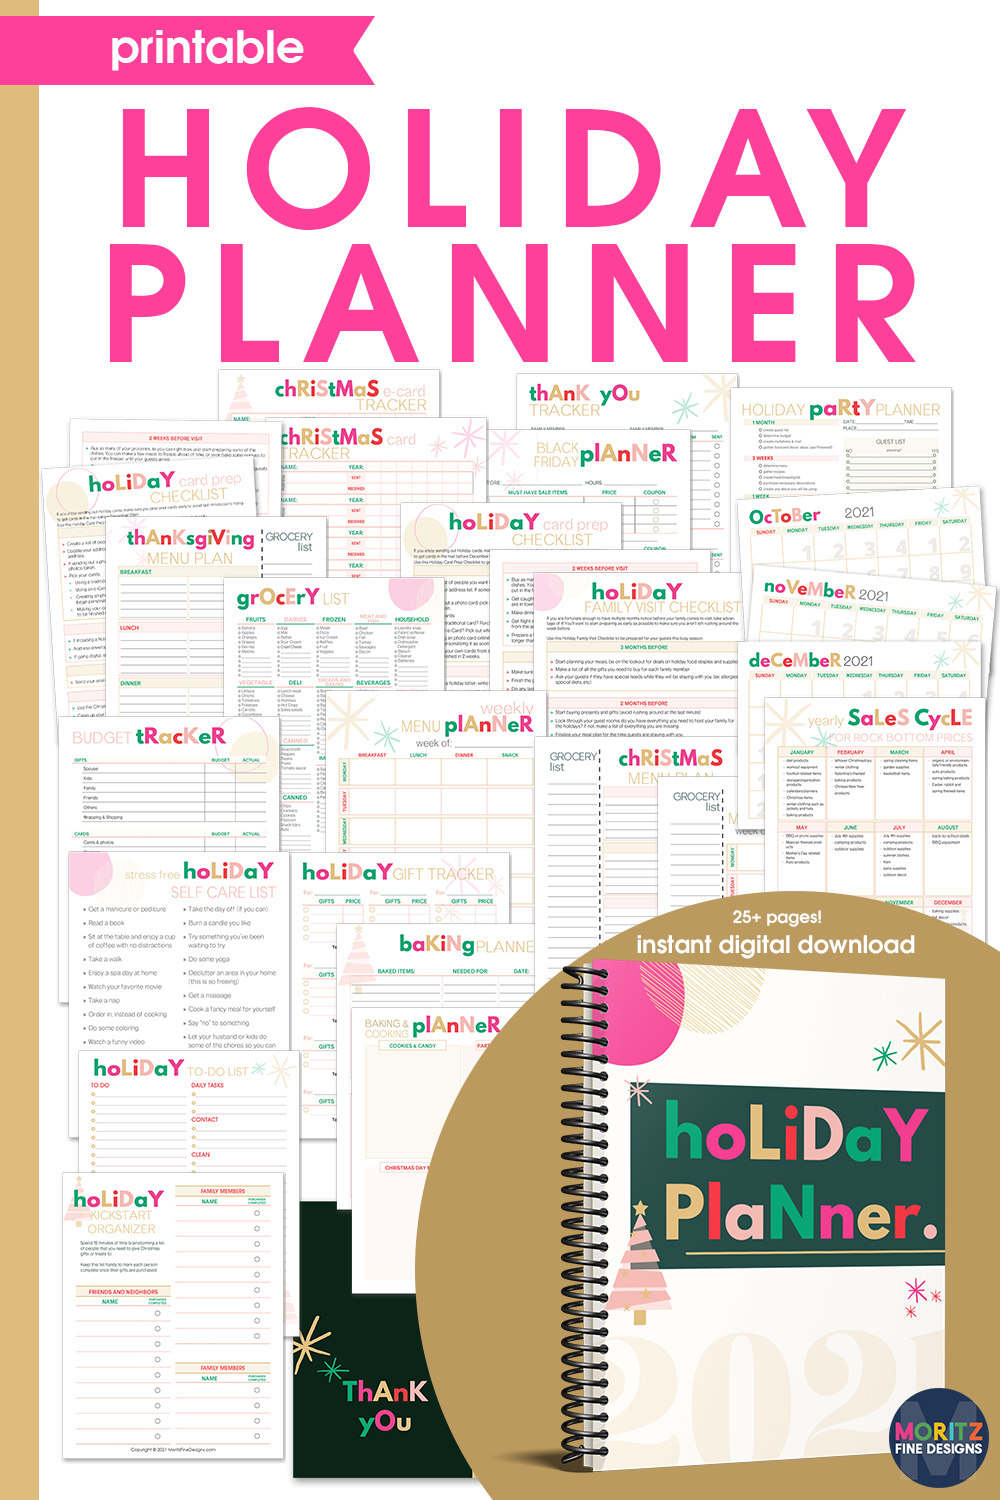 Use the Holiday Planner & Organizer to get ahead on all holiday tasks including menu planning, gift buying and tracking, budgeting and more.